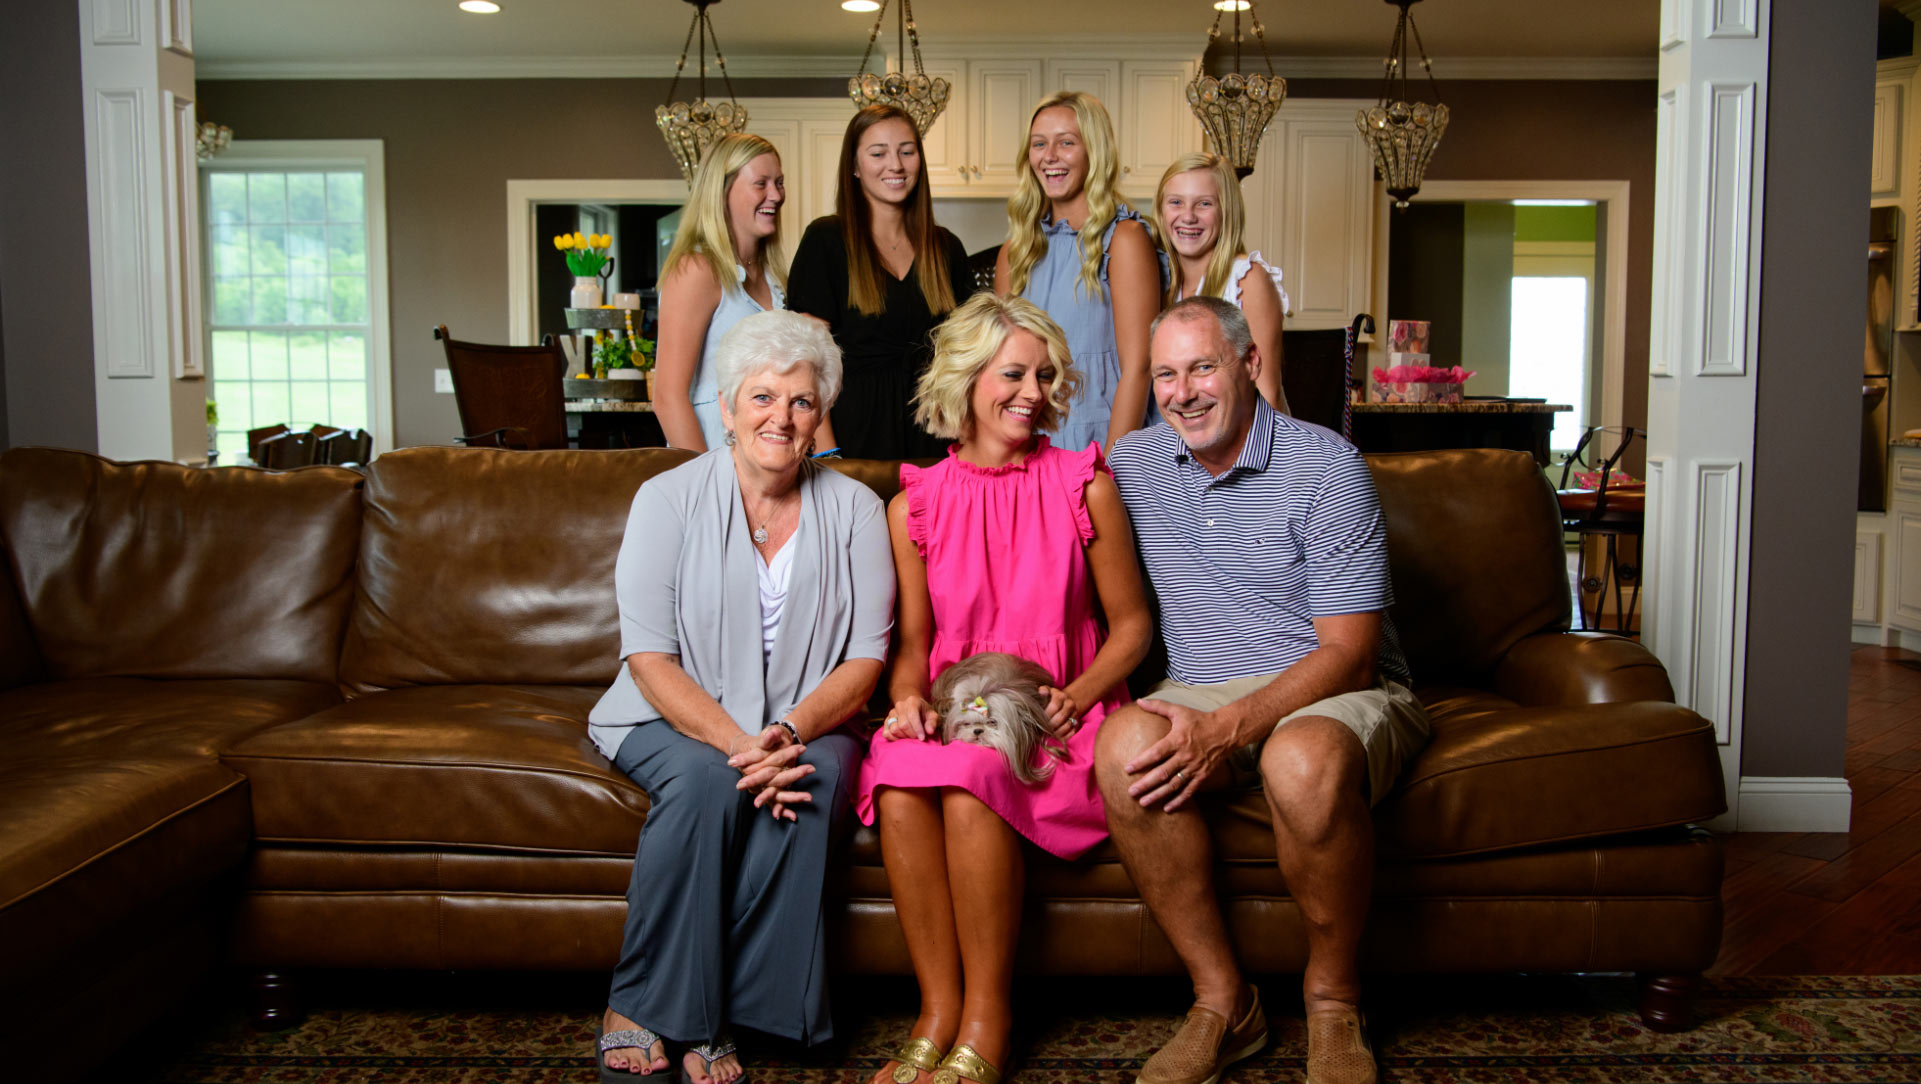 Angela and her family pose for a photo in their living room. She is flanked by her husband and her mother, with her four teenage daughters standing behind them. Angela has a small fluffy dog on her lap.